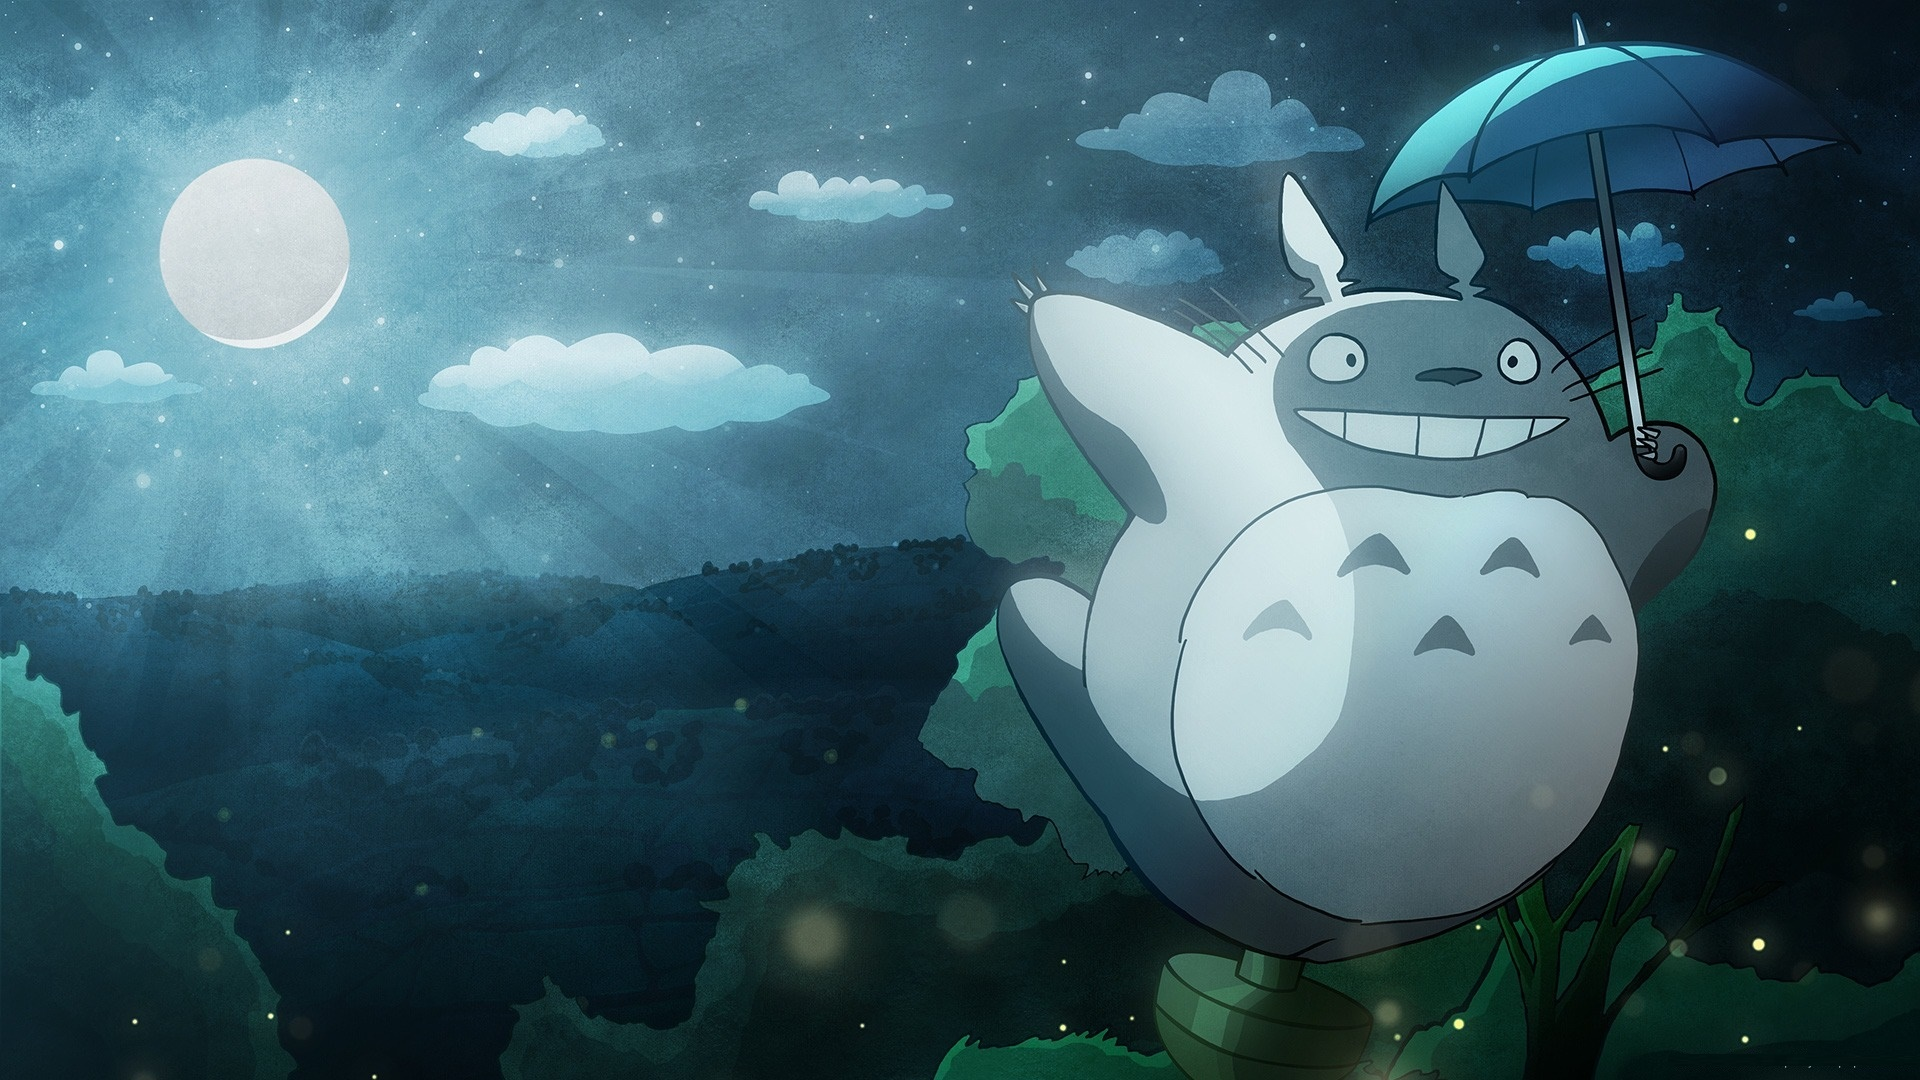 images-download-totoro-anime-wallpapers-hd | wallpaper.wiki